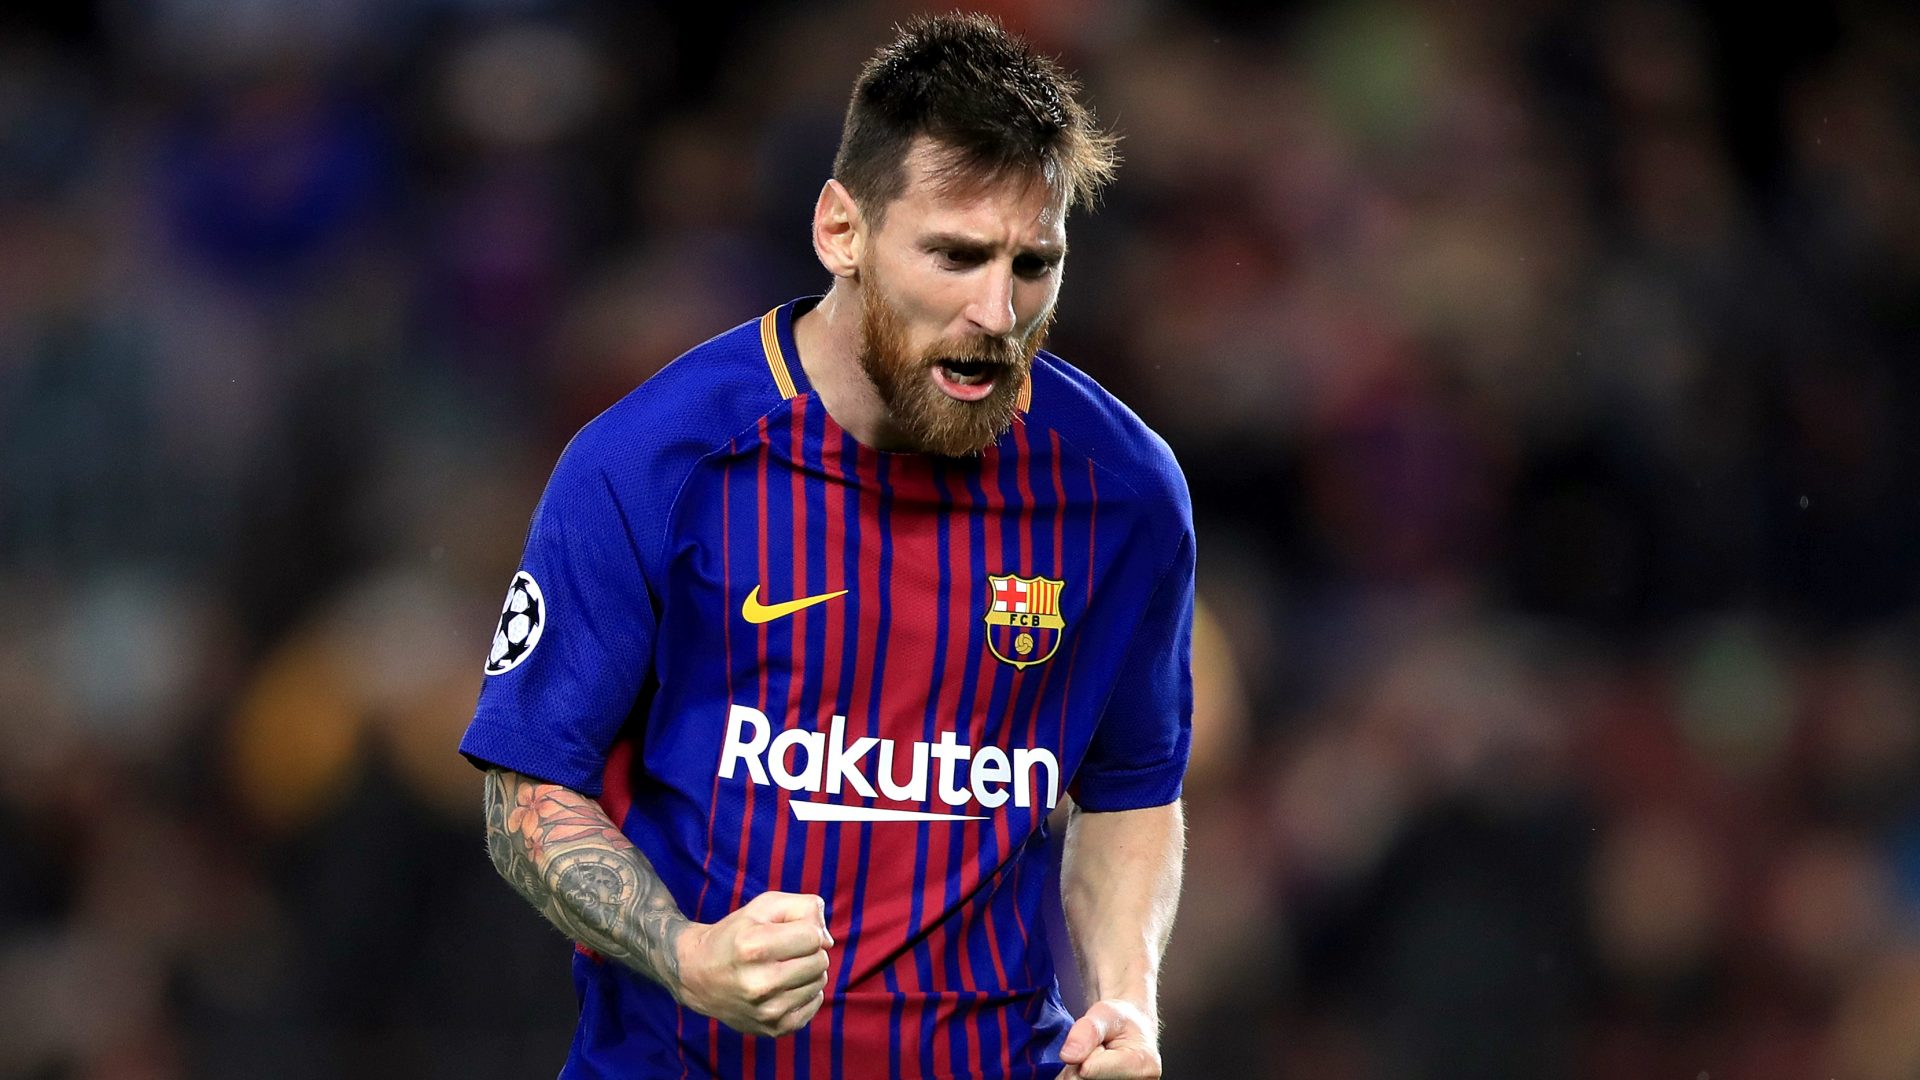 Cute Animated Wallpapers For Mobile Lionel Messi 2018 Wallpaper Hd